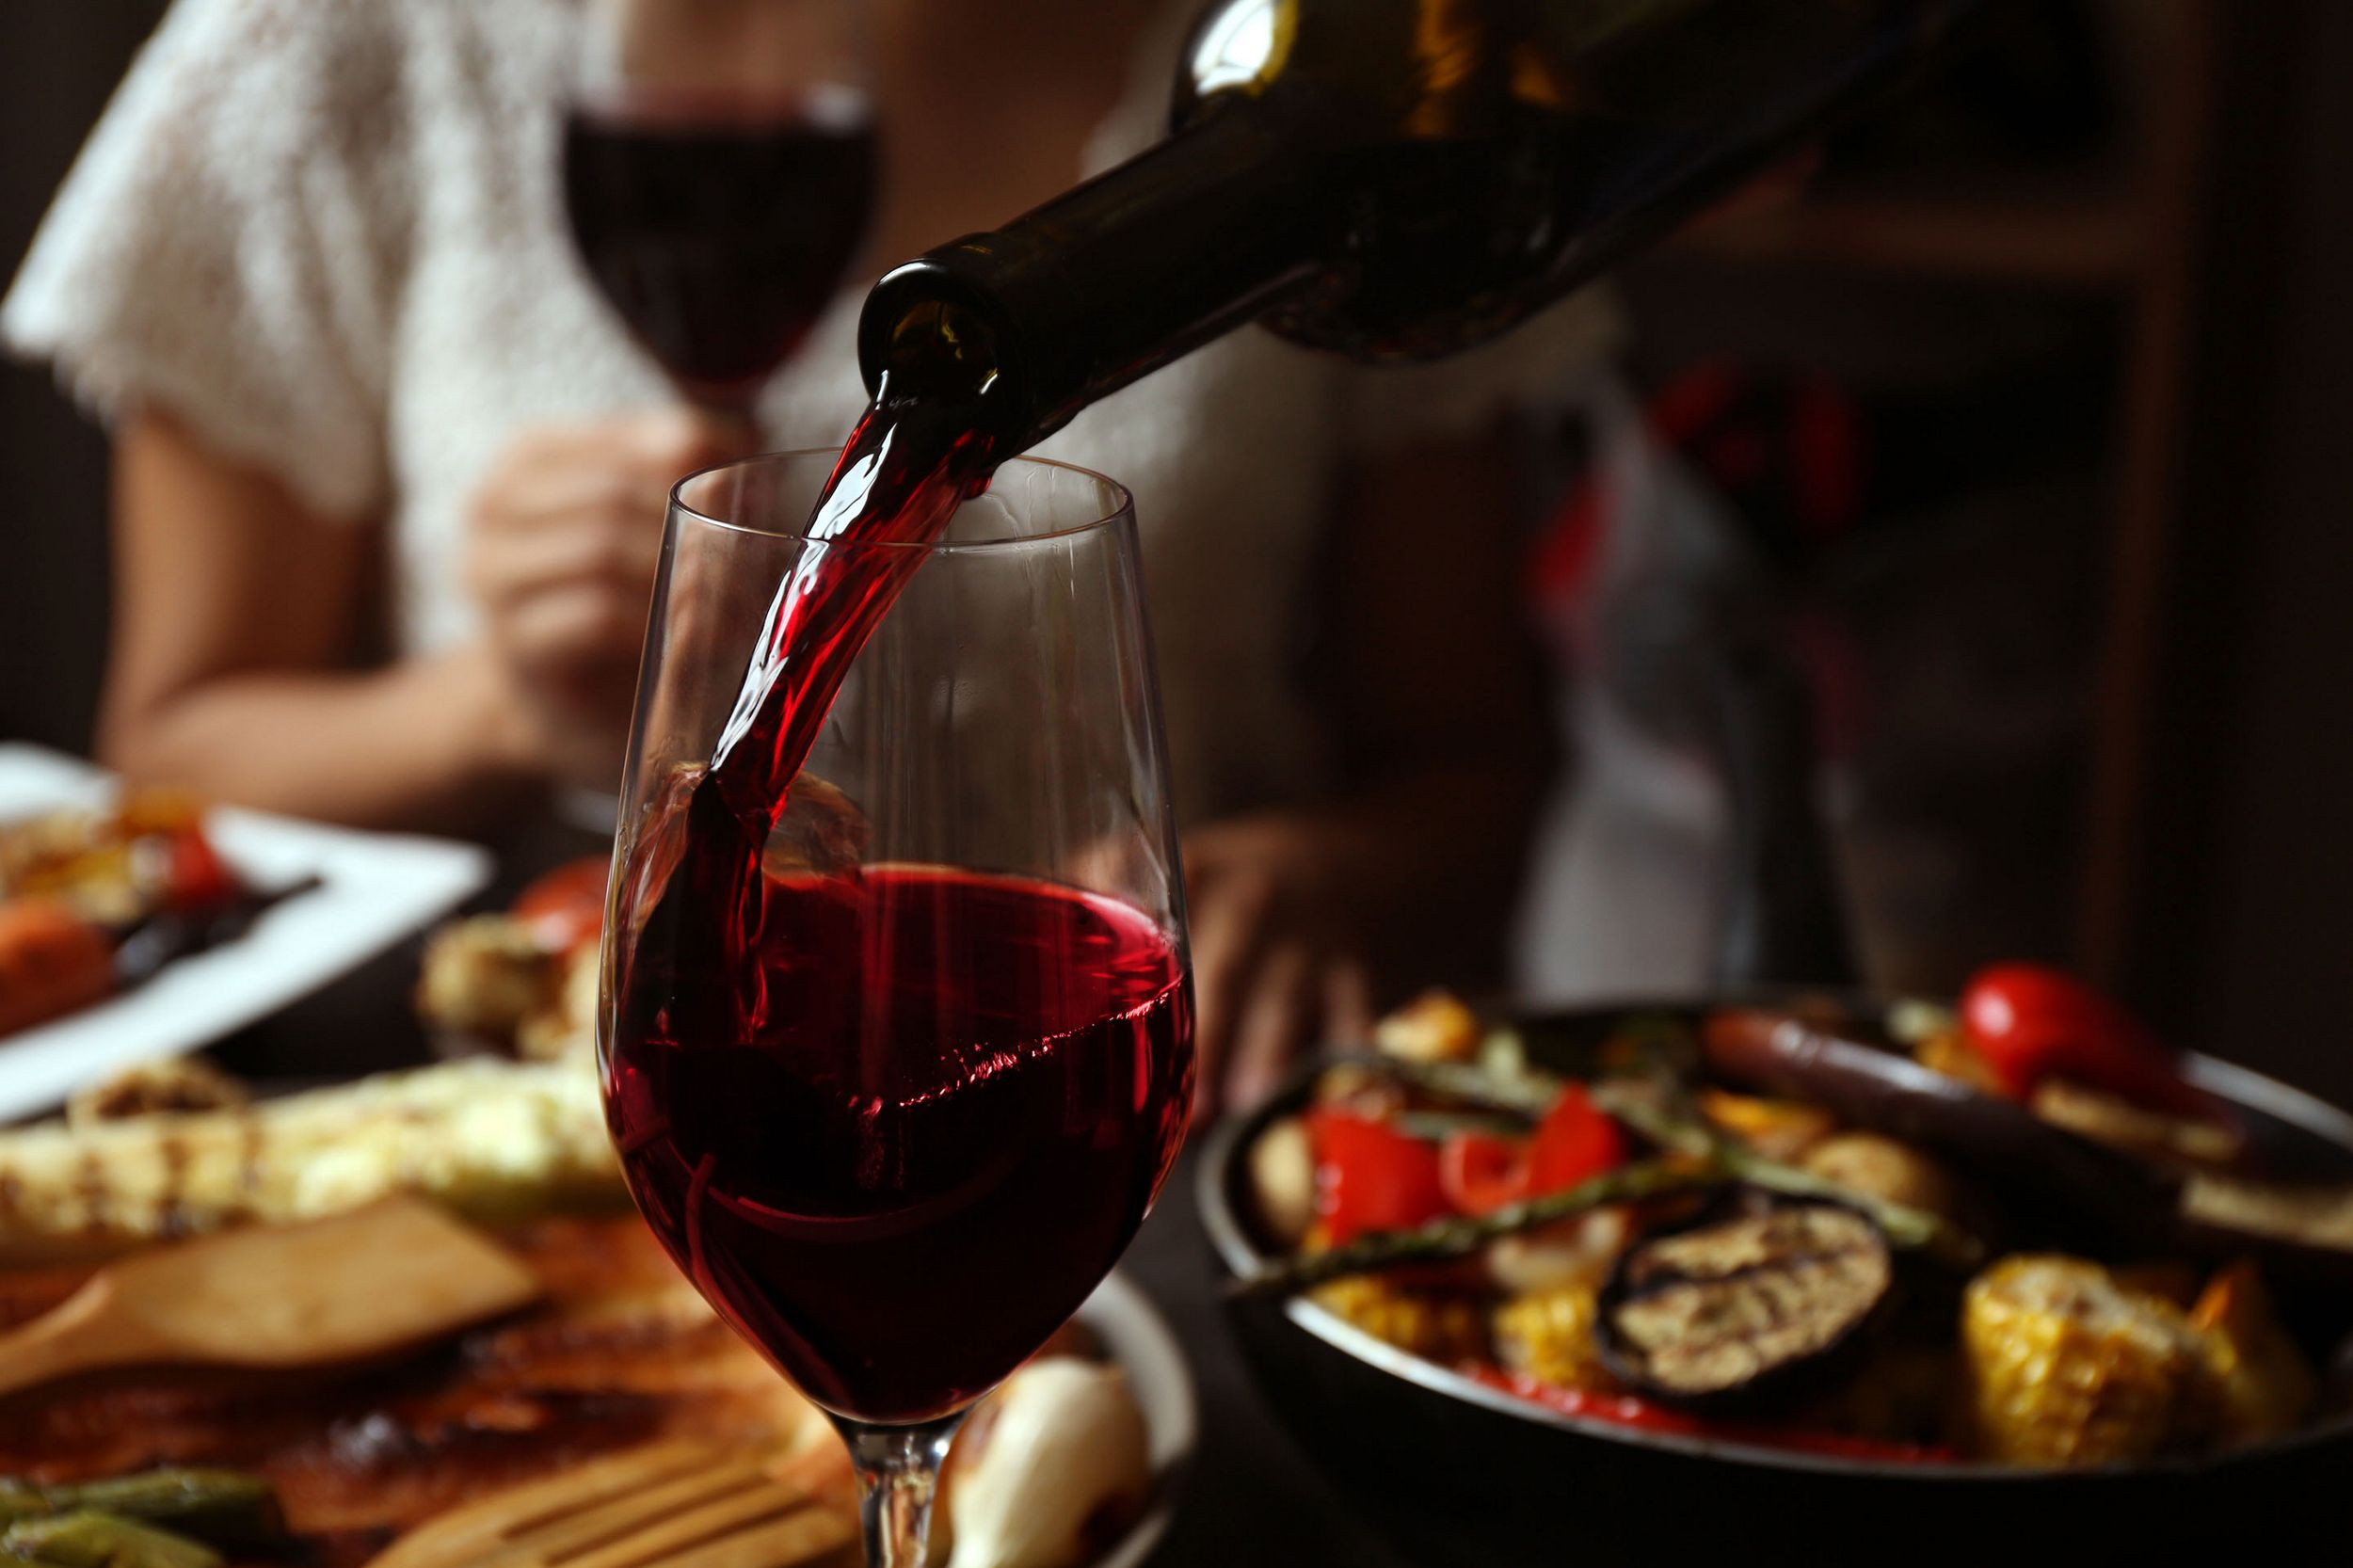 Red wine being poured into a glass with food in the background